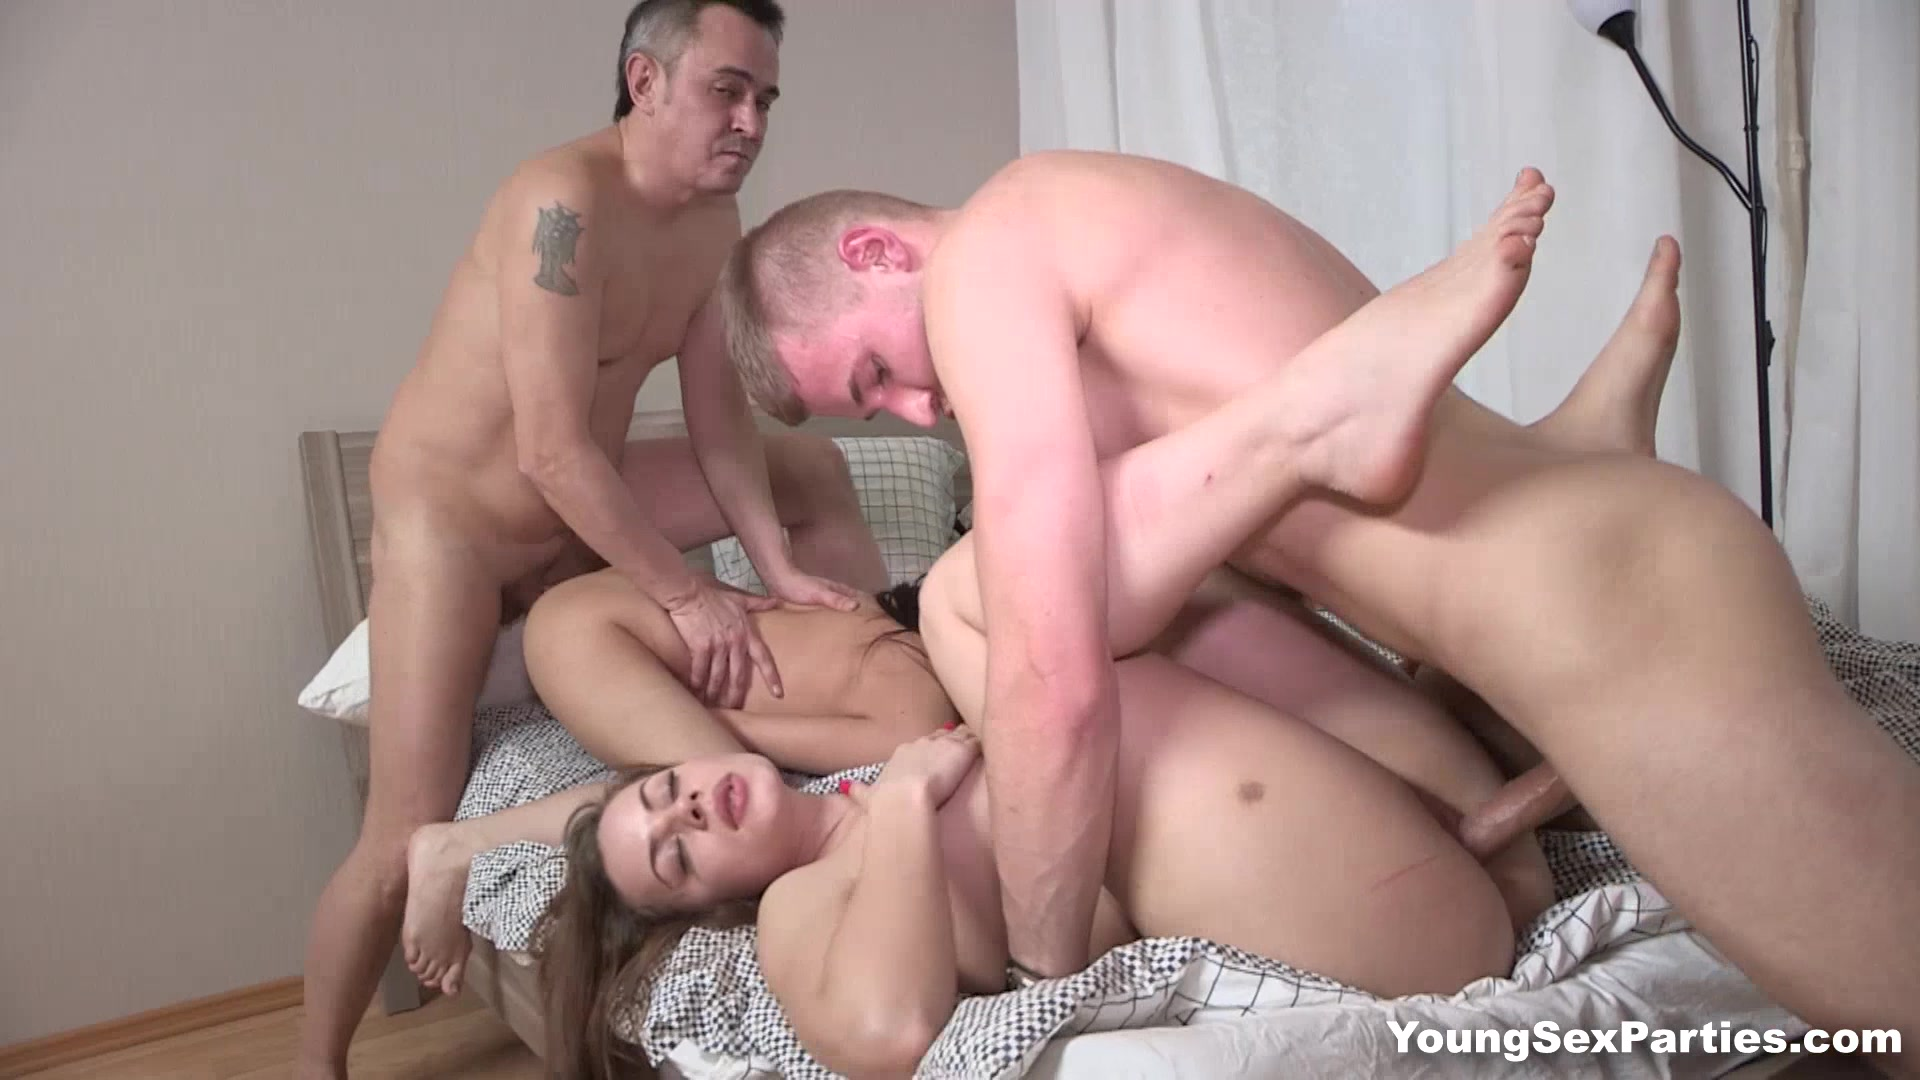 Young Sex Parties - Grace - Rita Milan - Strip games and foursome fucking